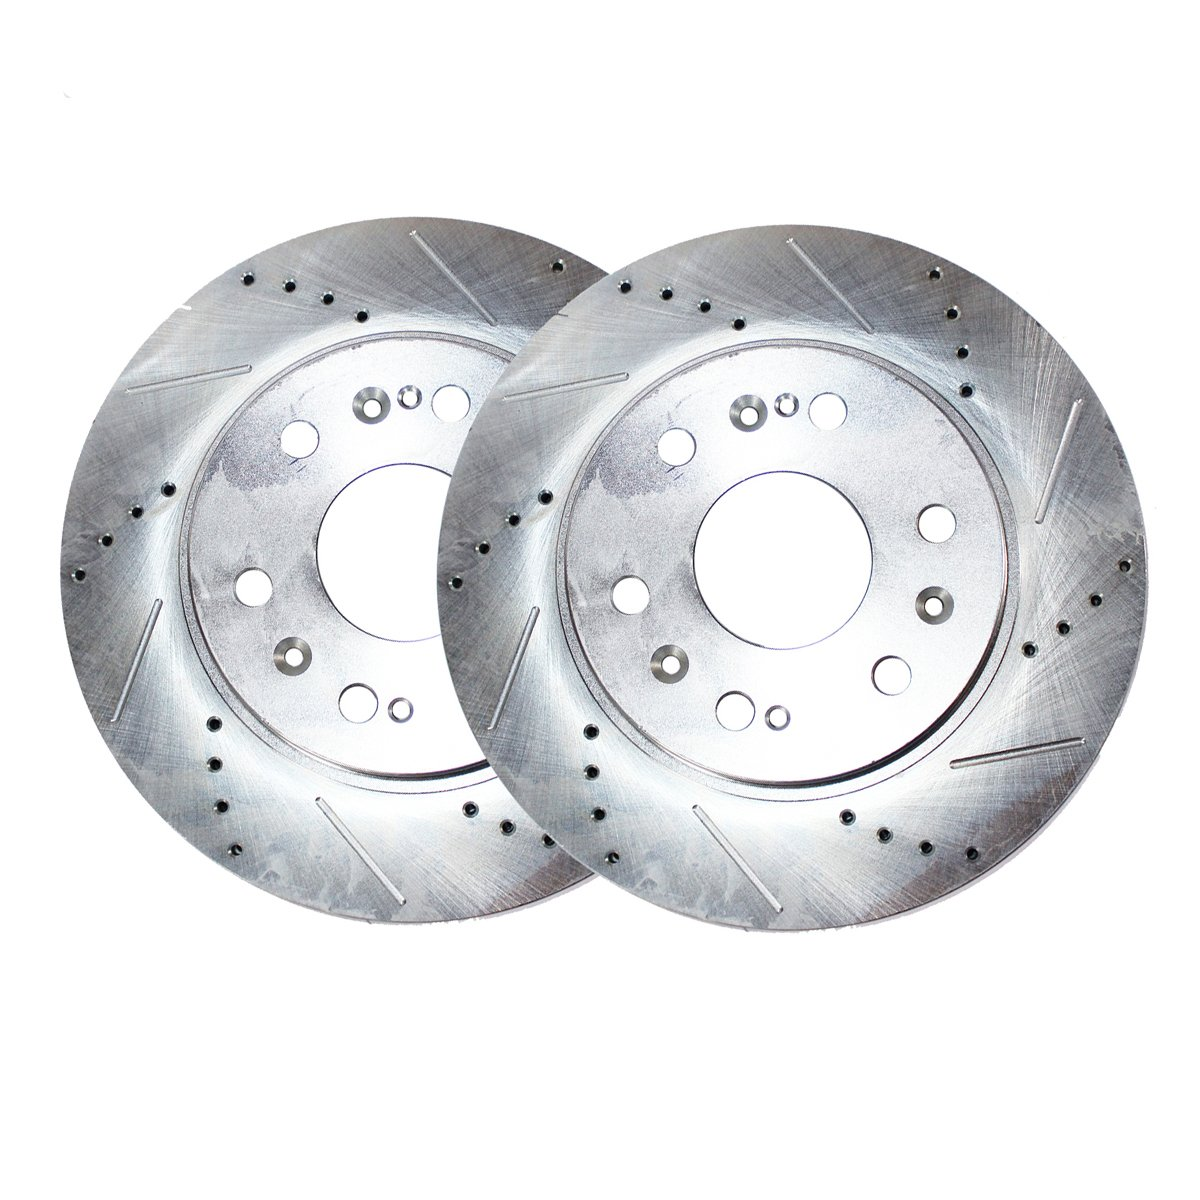 Detroit Axle - 6-Lug FRONT Drilled and Slotted Brake Rotors - Performance  Grade for Ford Expedition F-150 Lincoln Navigator